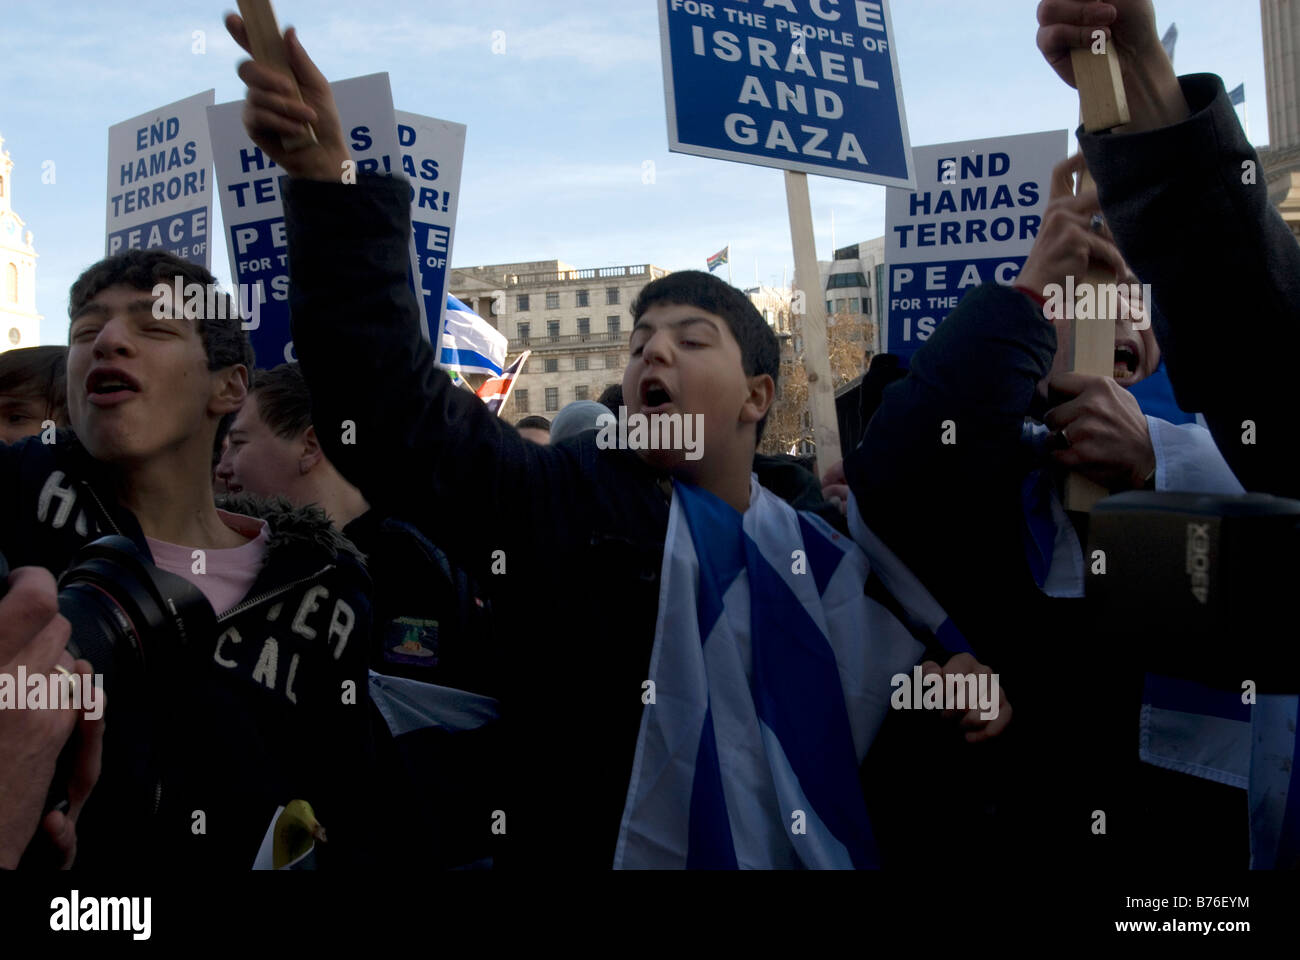 Demonstration in support of Israel. Young supporters of Israel taunt a counter pro Palestine demonstration - Stock Image